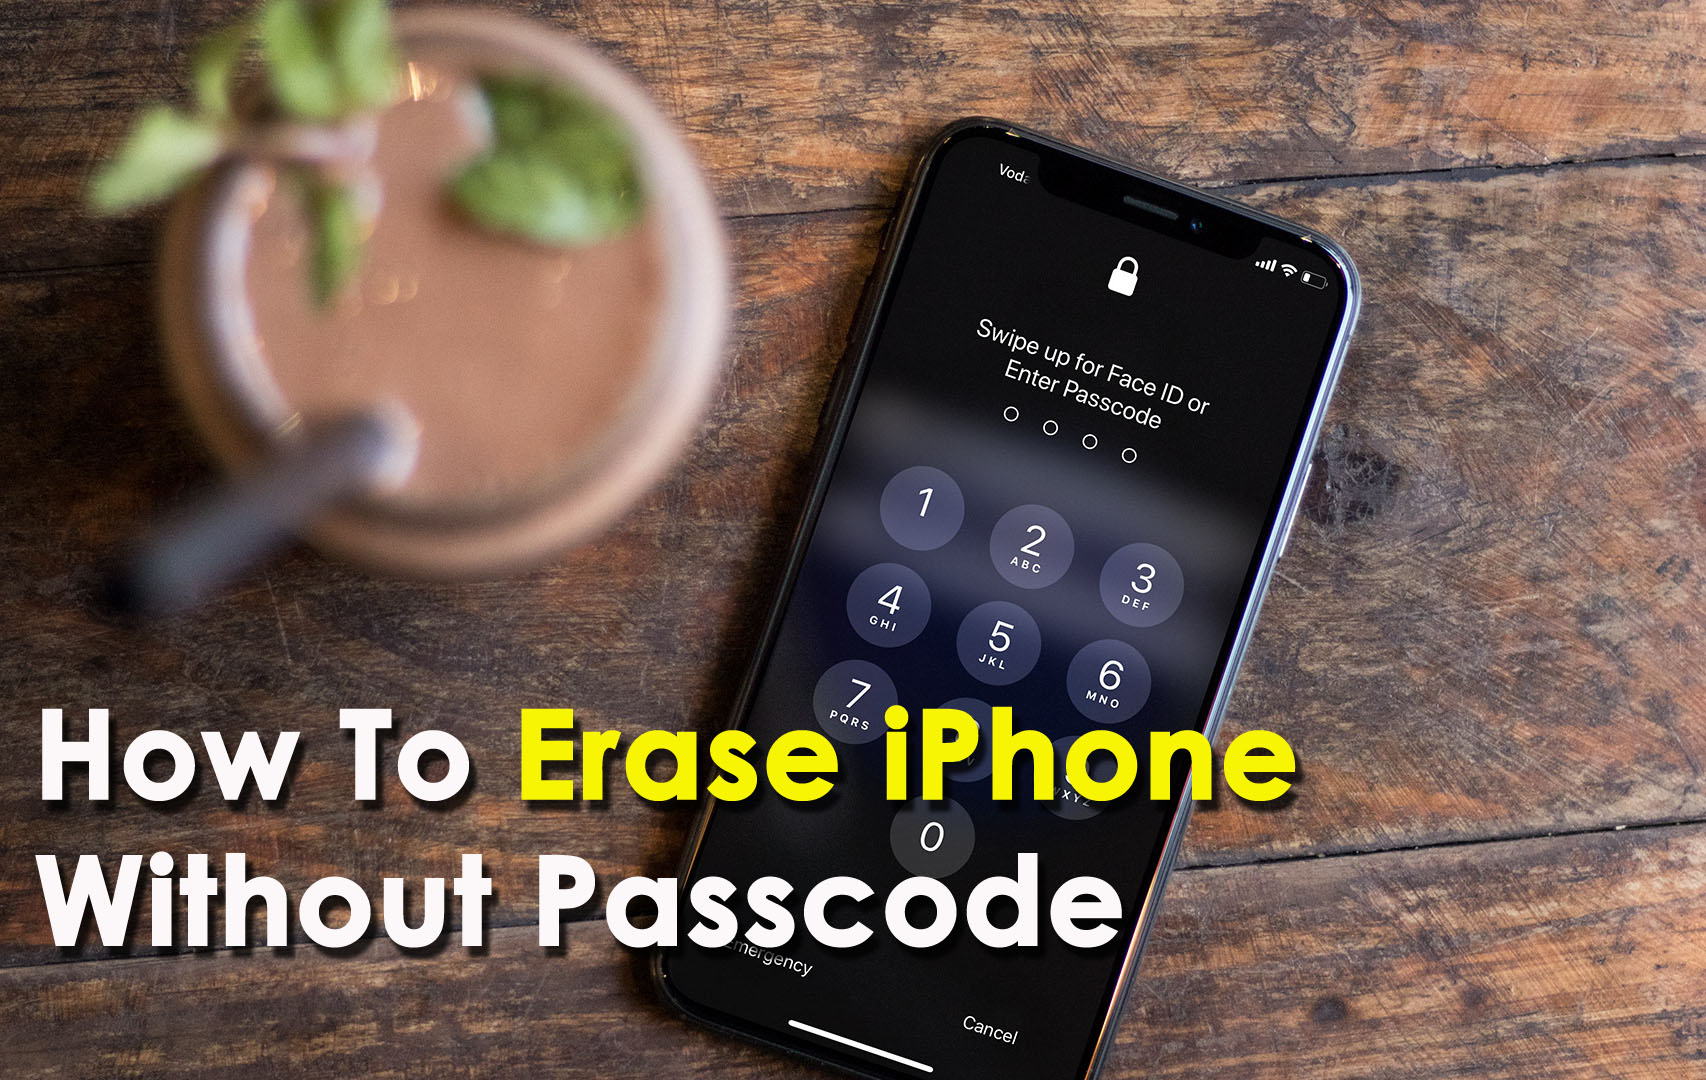 [3 Methods]- How To Erase iPhone Without Passcode (iPhone XR/XS/XS Max Supported)